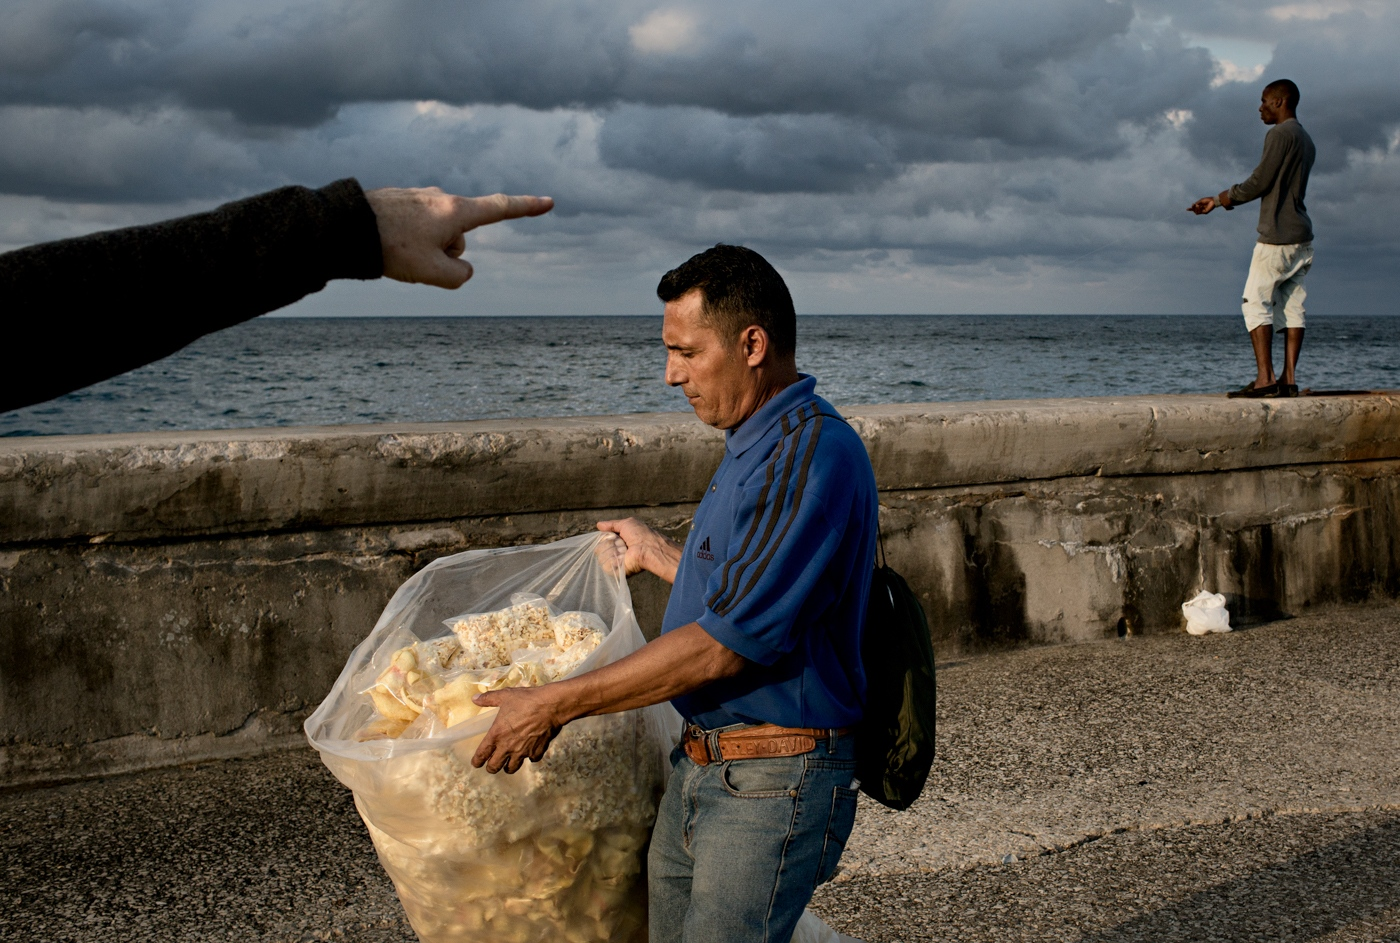 A man sells homemade popcorn to tourists, lovers and fishermen on The Malecón. The Malecón (sea wall) was first built in 1901 and then was expanded. The main purpose of it was to protect the City from the ocean waters-aside from that, it now is a major promenade space for families, lovers, prostitutes and fishermen.